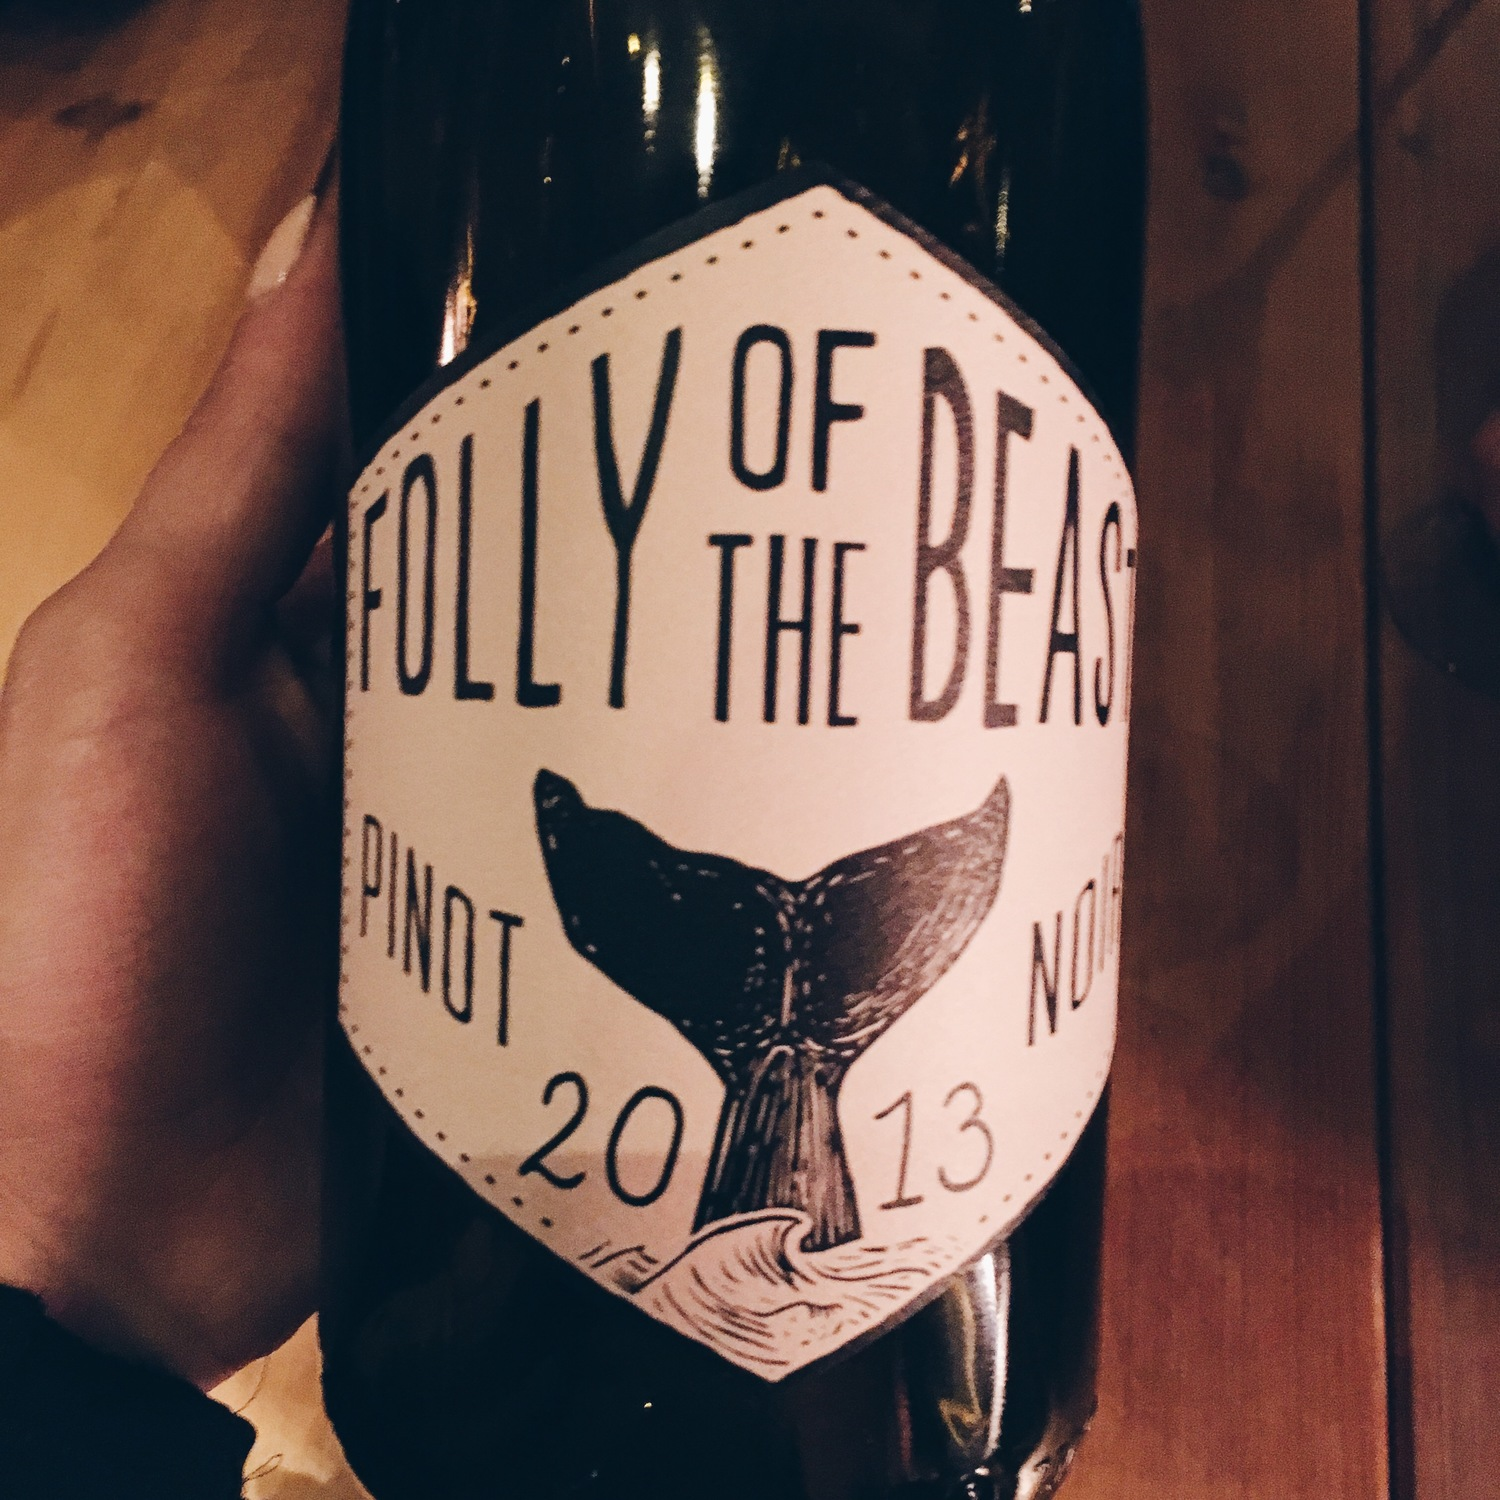 New love for this Pinot Noir from the central coast of CA, Folly of the Beast. Pinot Noir is my favorite red.